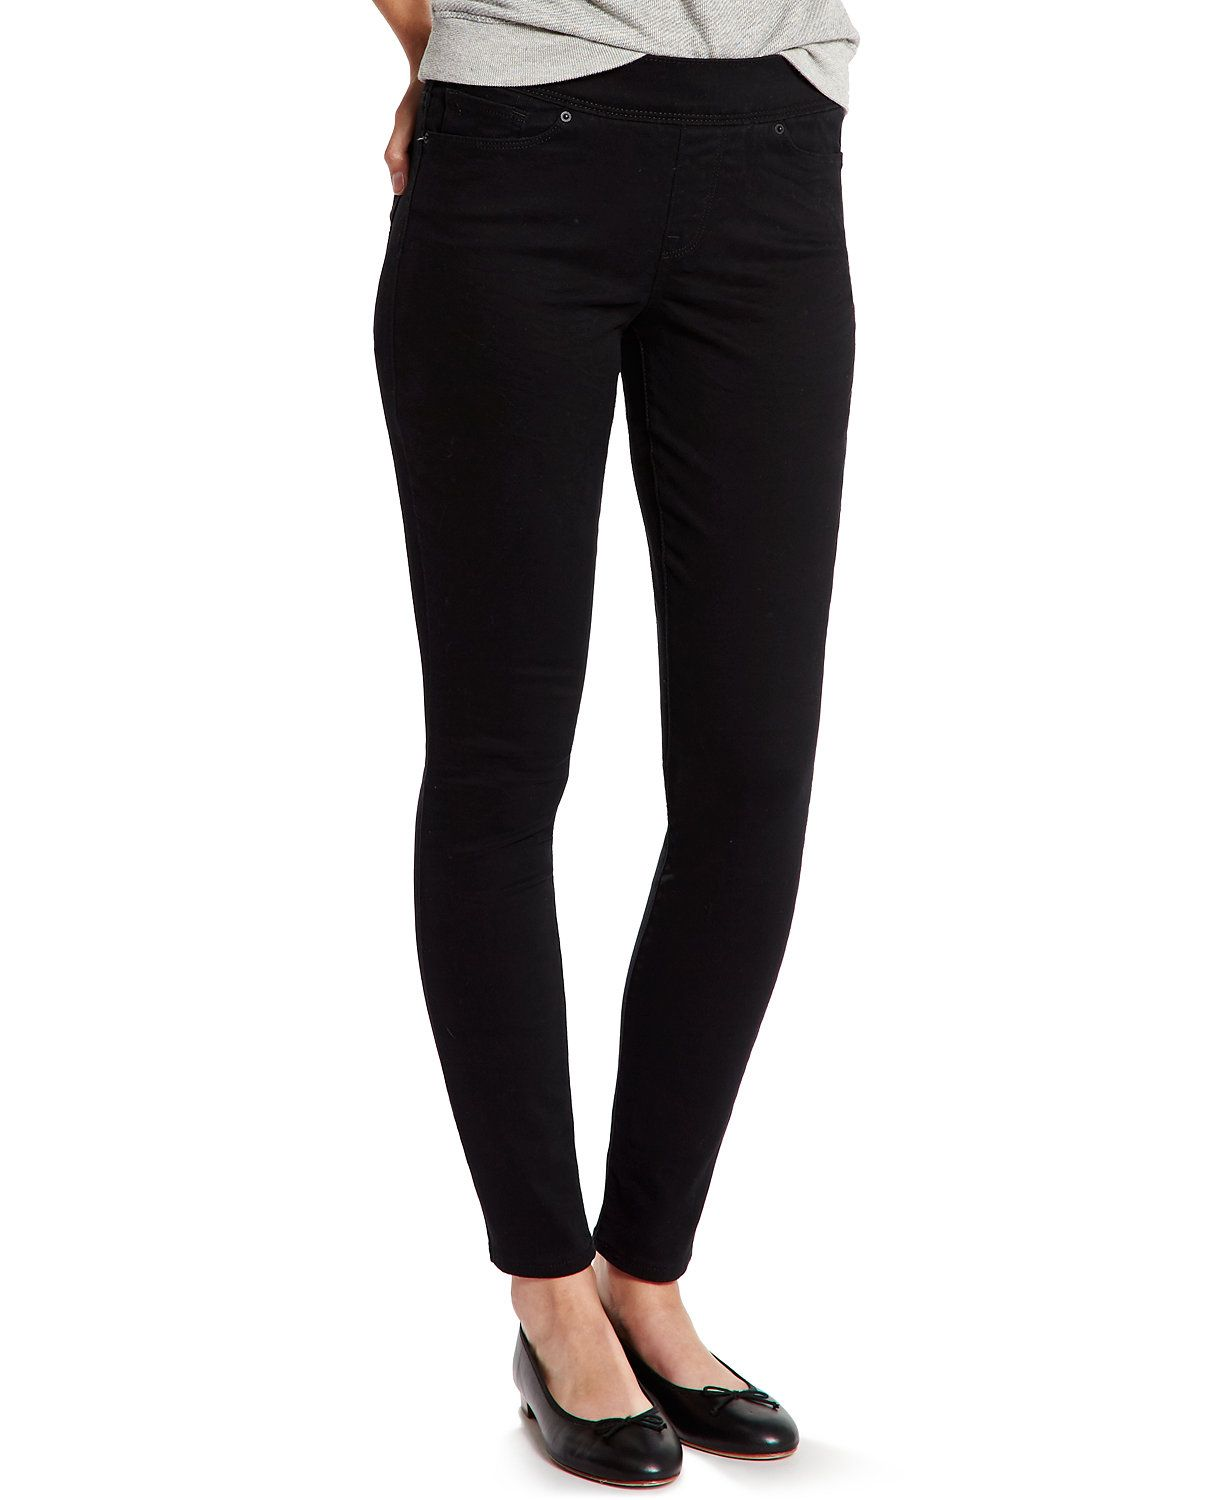 26cbc50f Skinny Perfectly Slimming Pull-On Jeggings | UniformMe | Levis ...